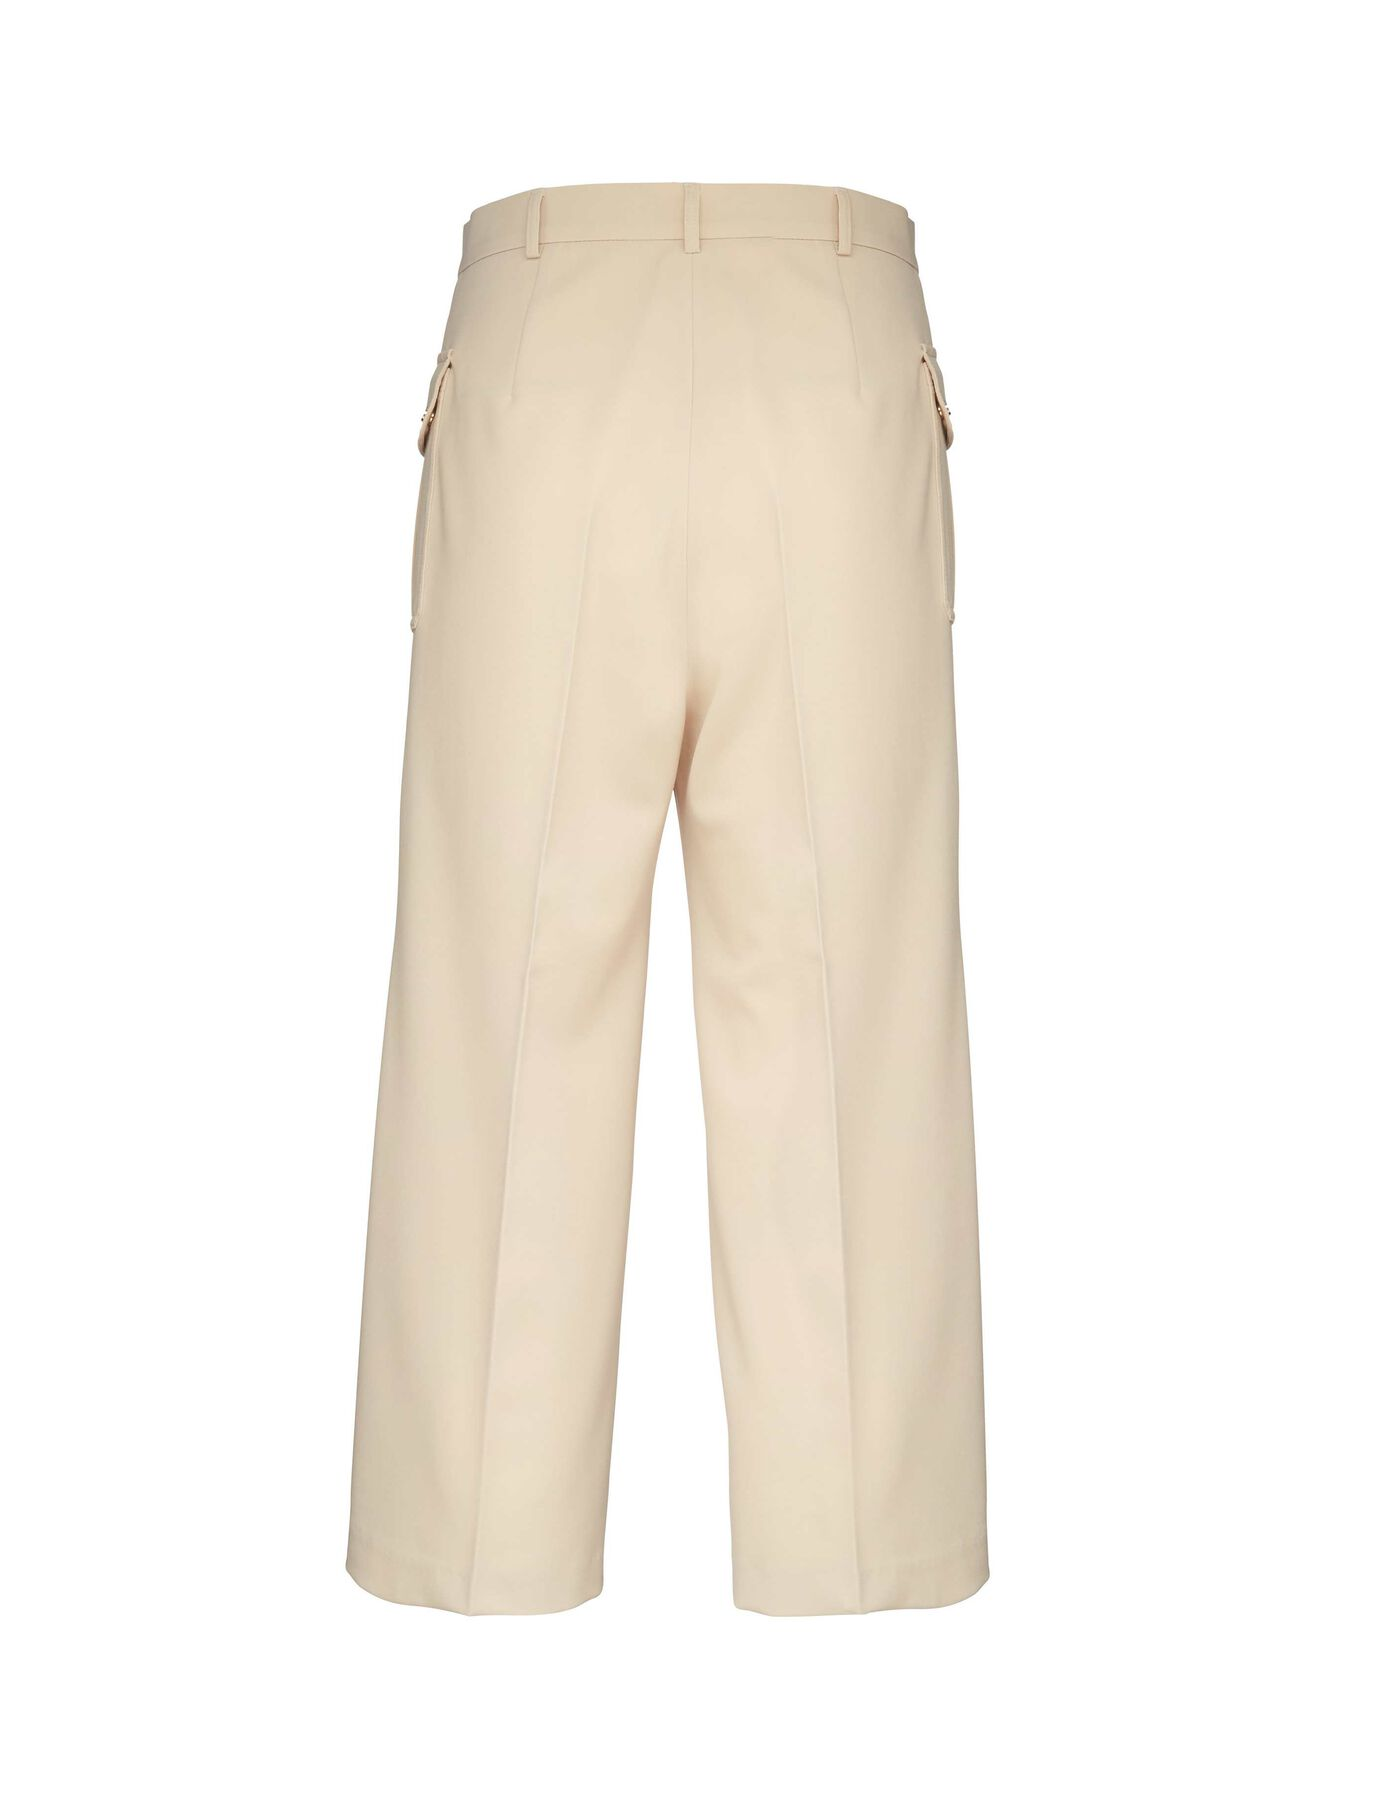 Gilah trousers in Mojave Desert from Tiger of Sweden